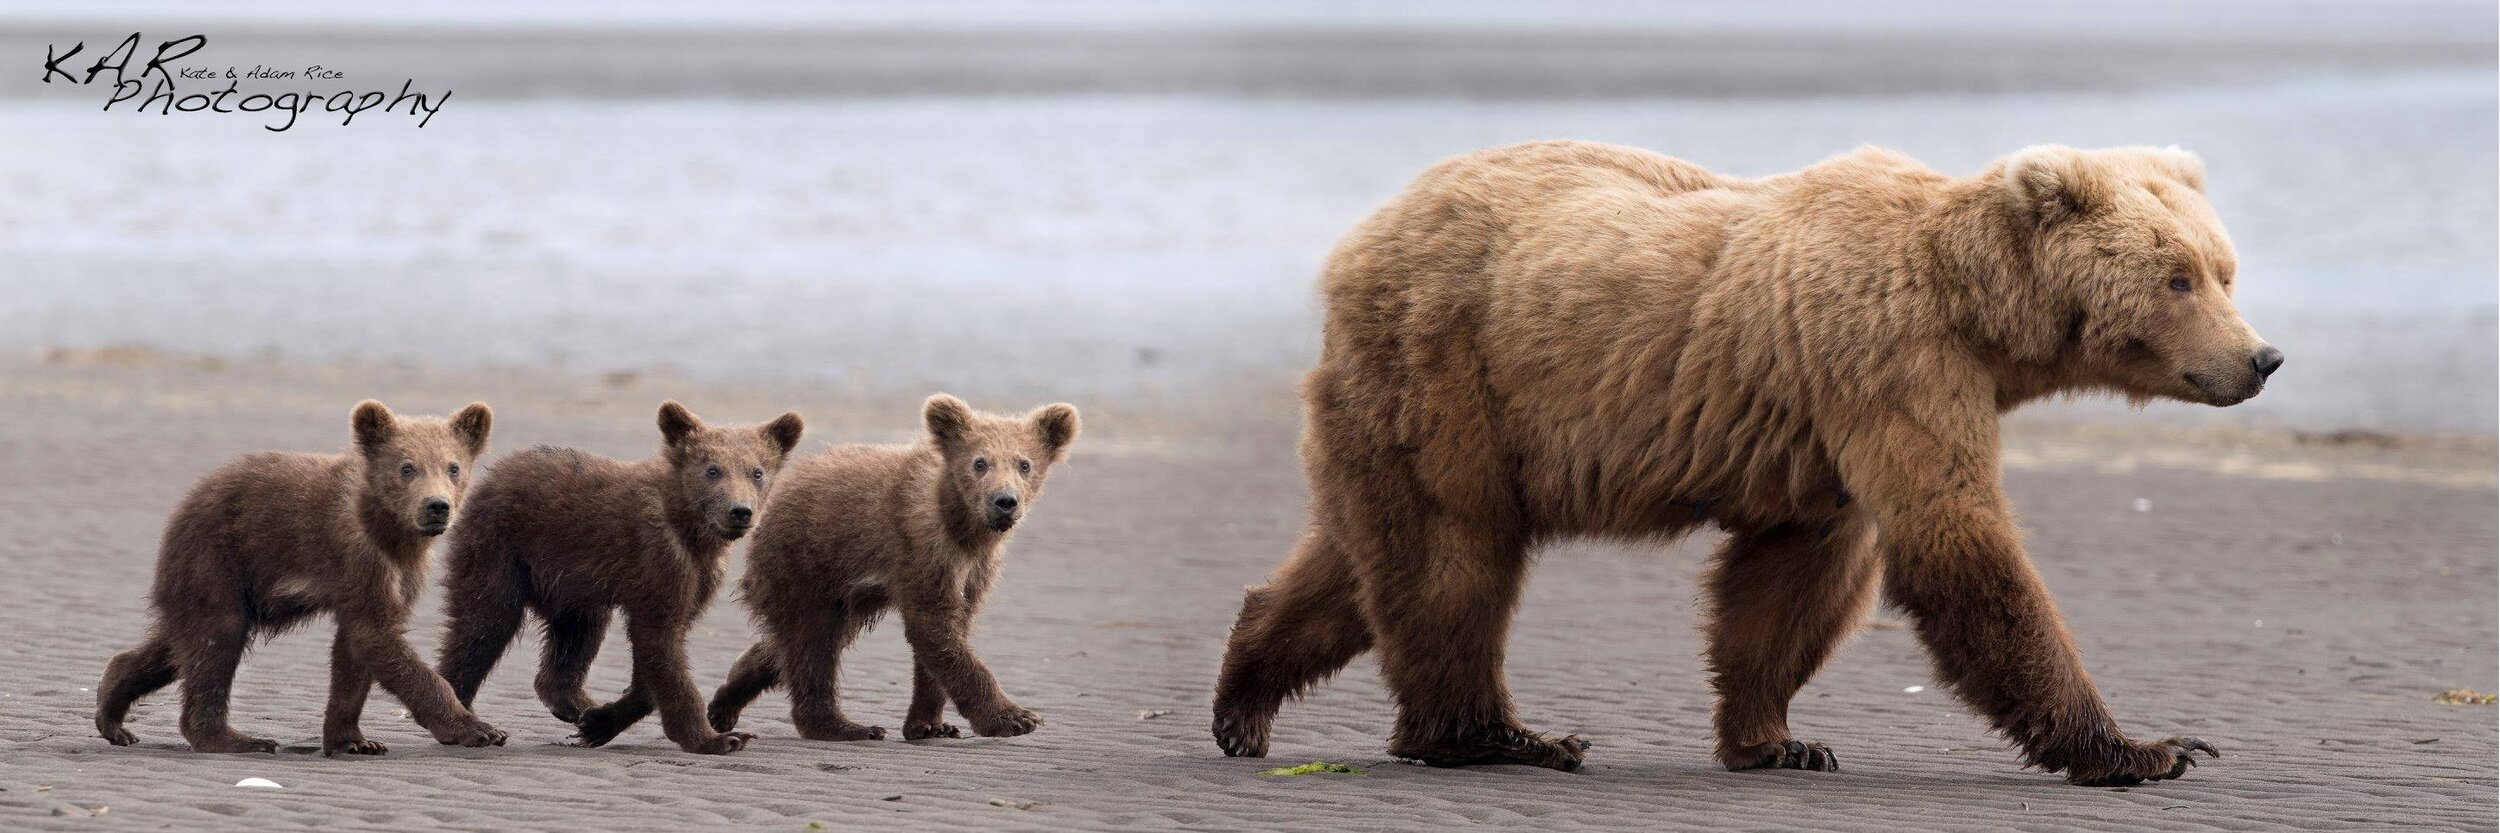 brown bear sow and cubs line pano.jpg